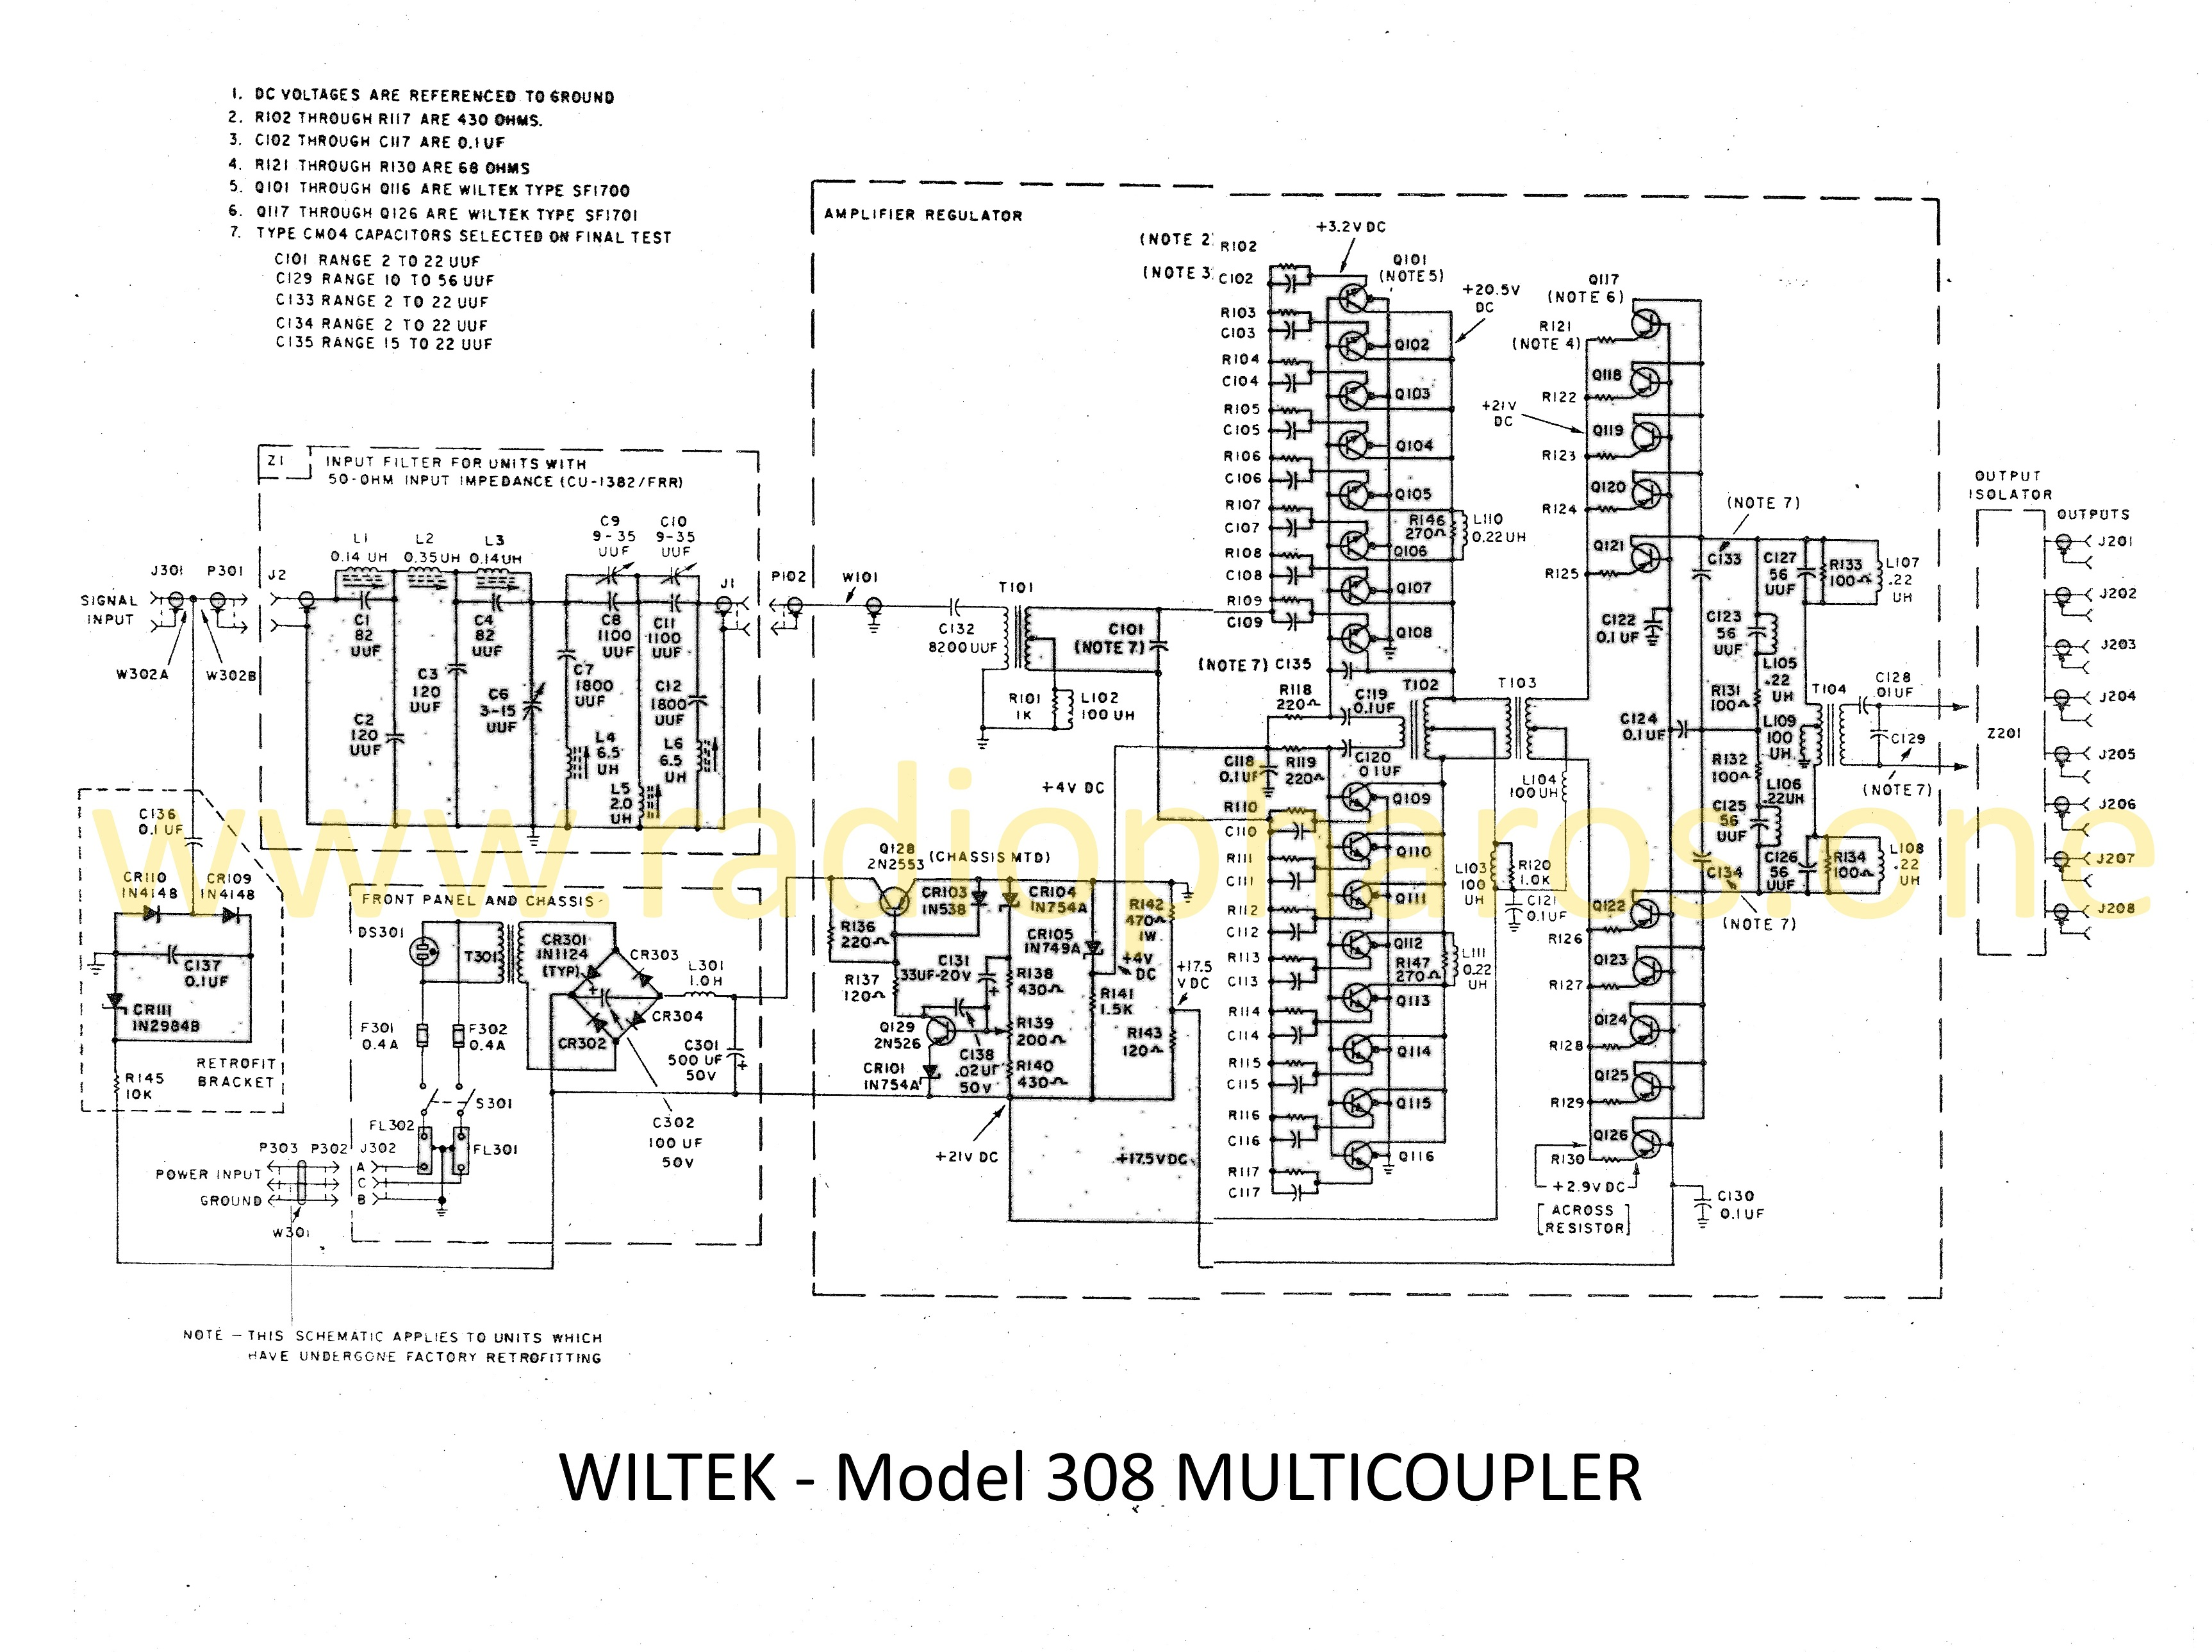 Model 308 Multicoupler Schematic